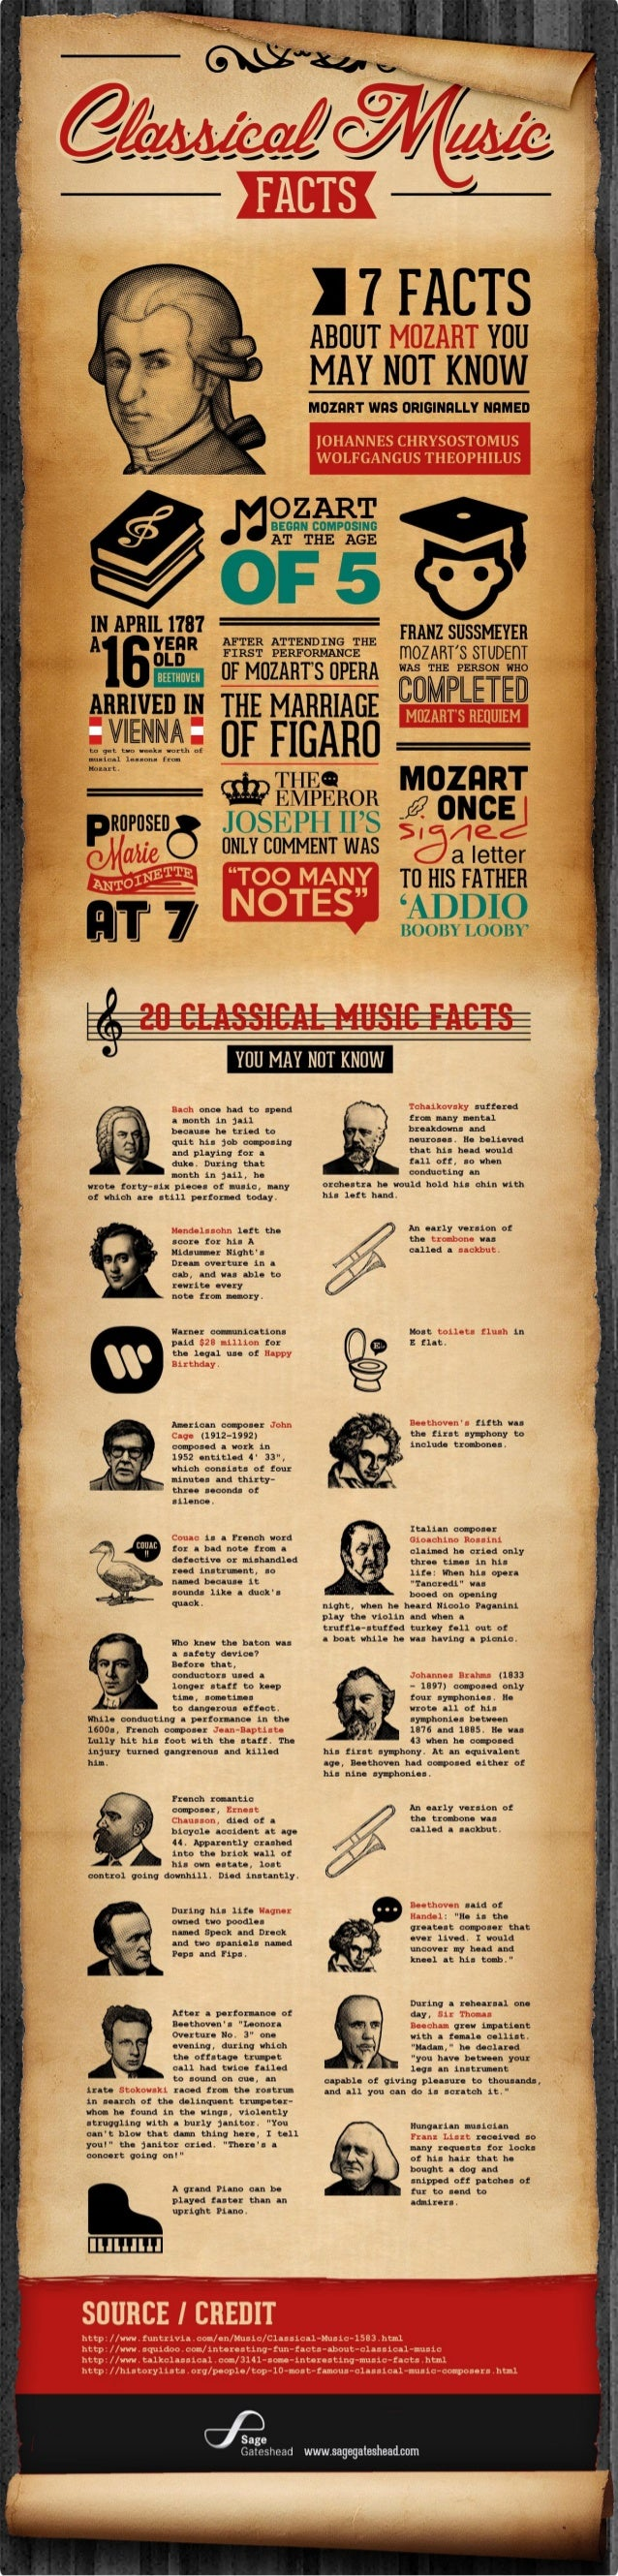 27 Classical Music Facts Infographic Sage Gateshead